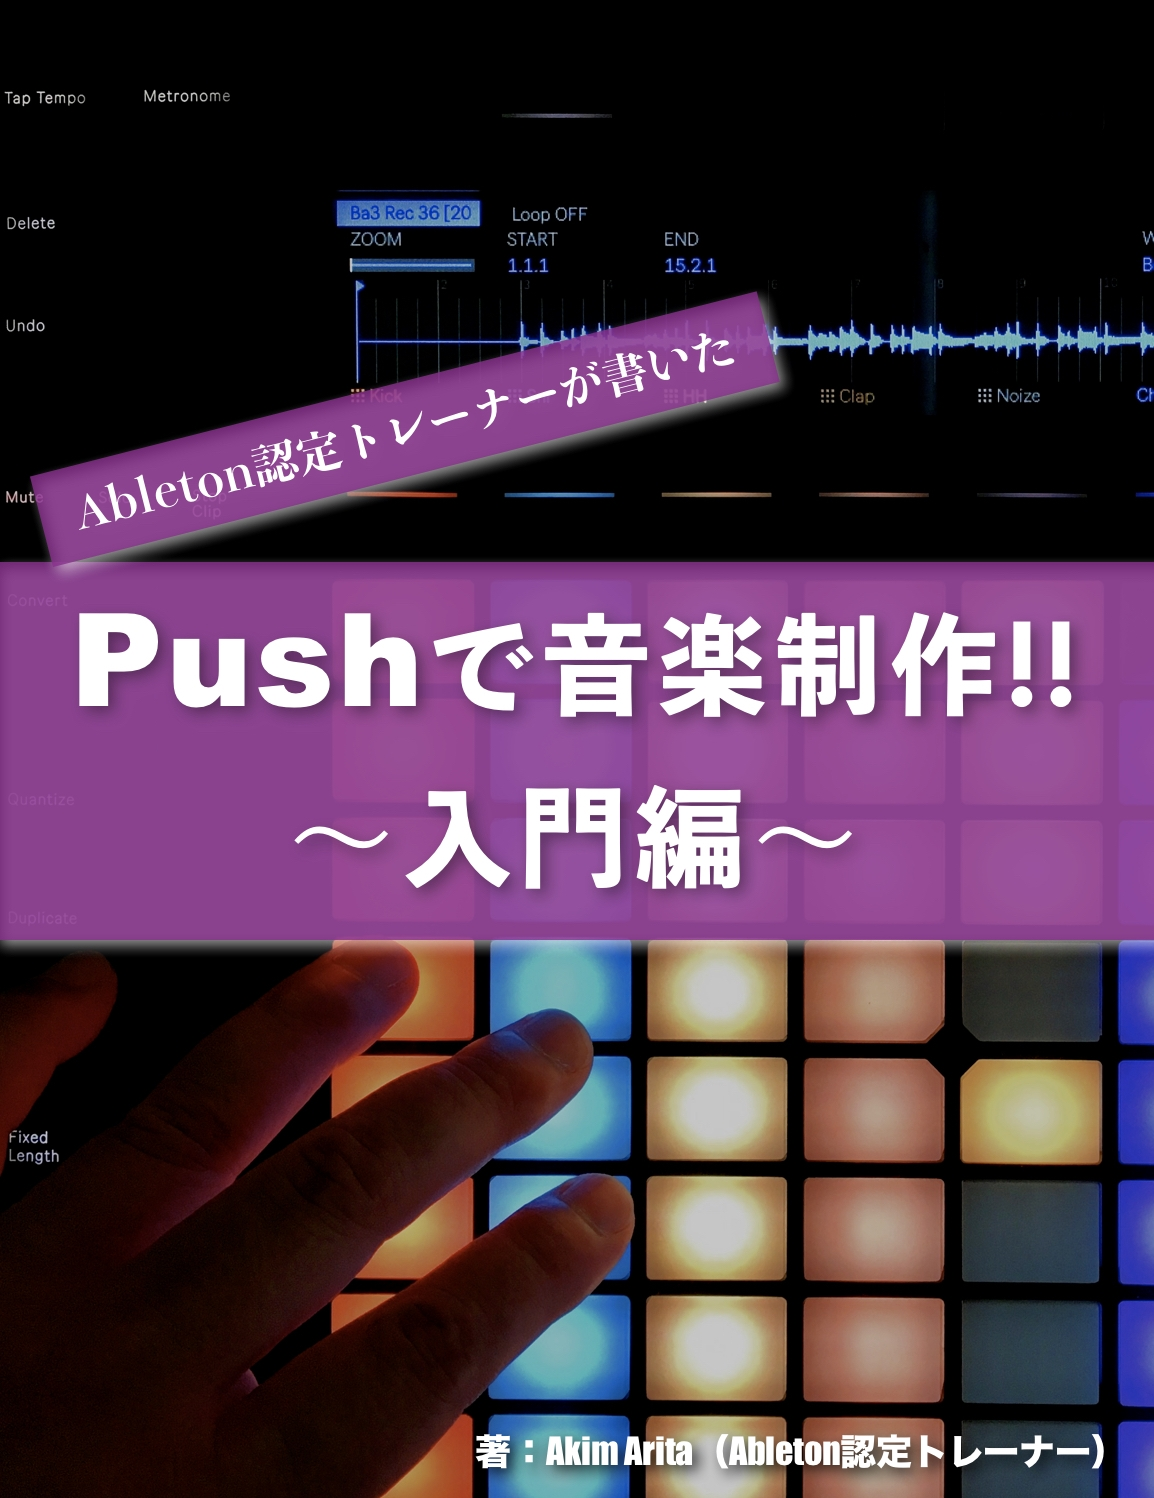 バンドマンこそAbleton Live~For Push2